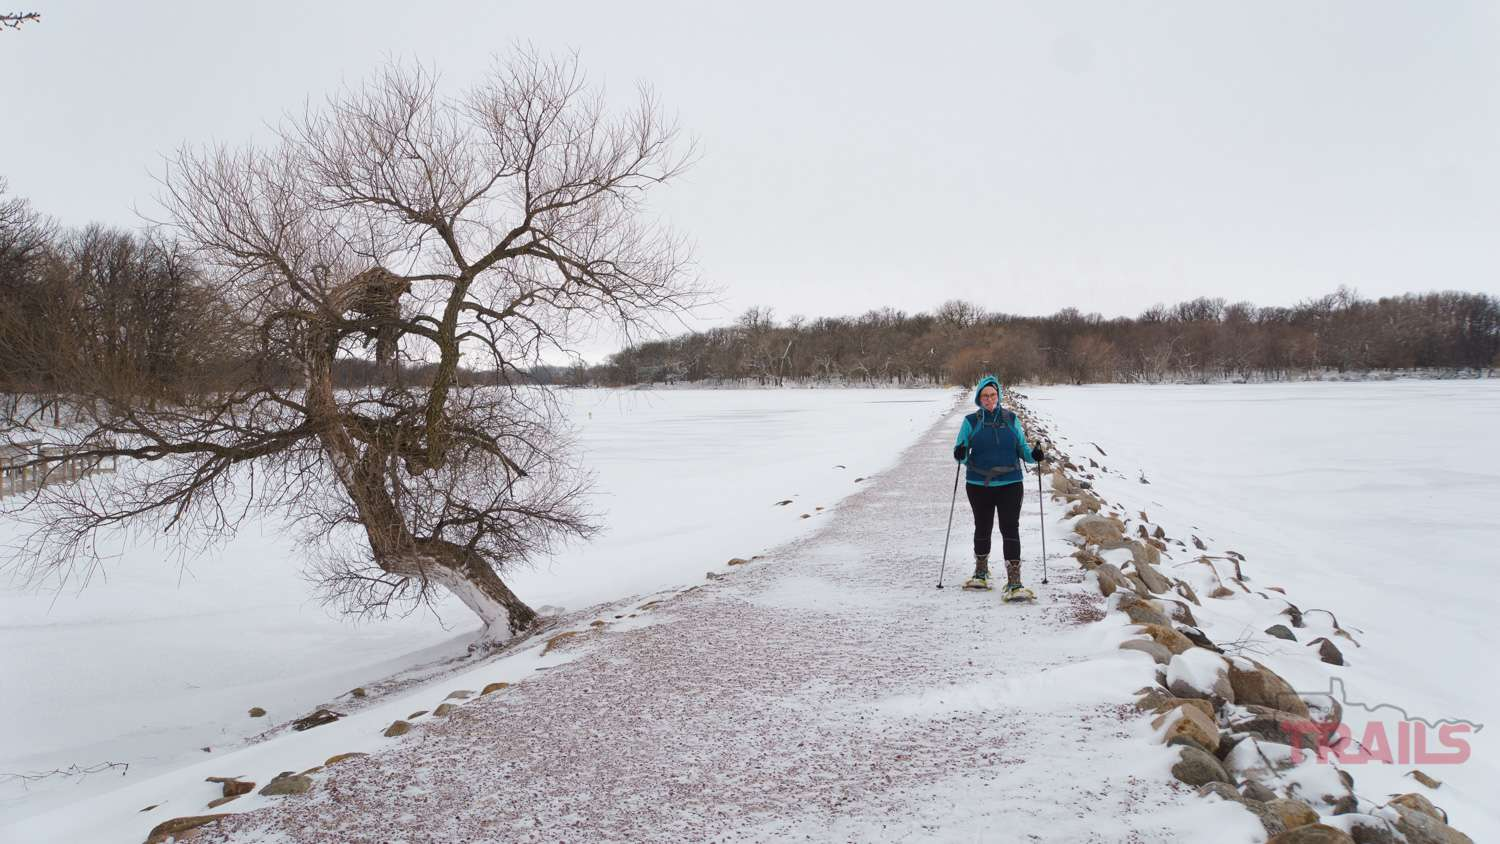 A woman walks on a trail across a lake on snowshoes